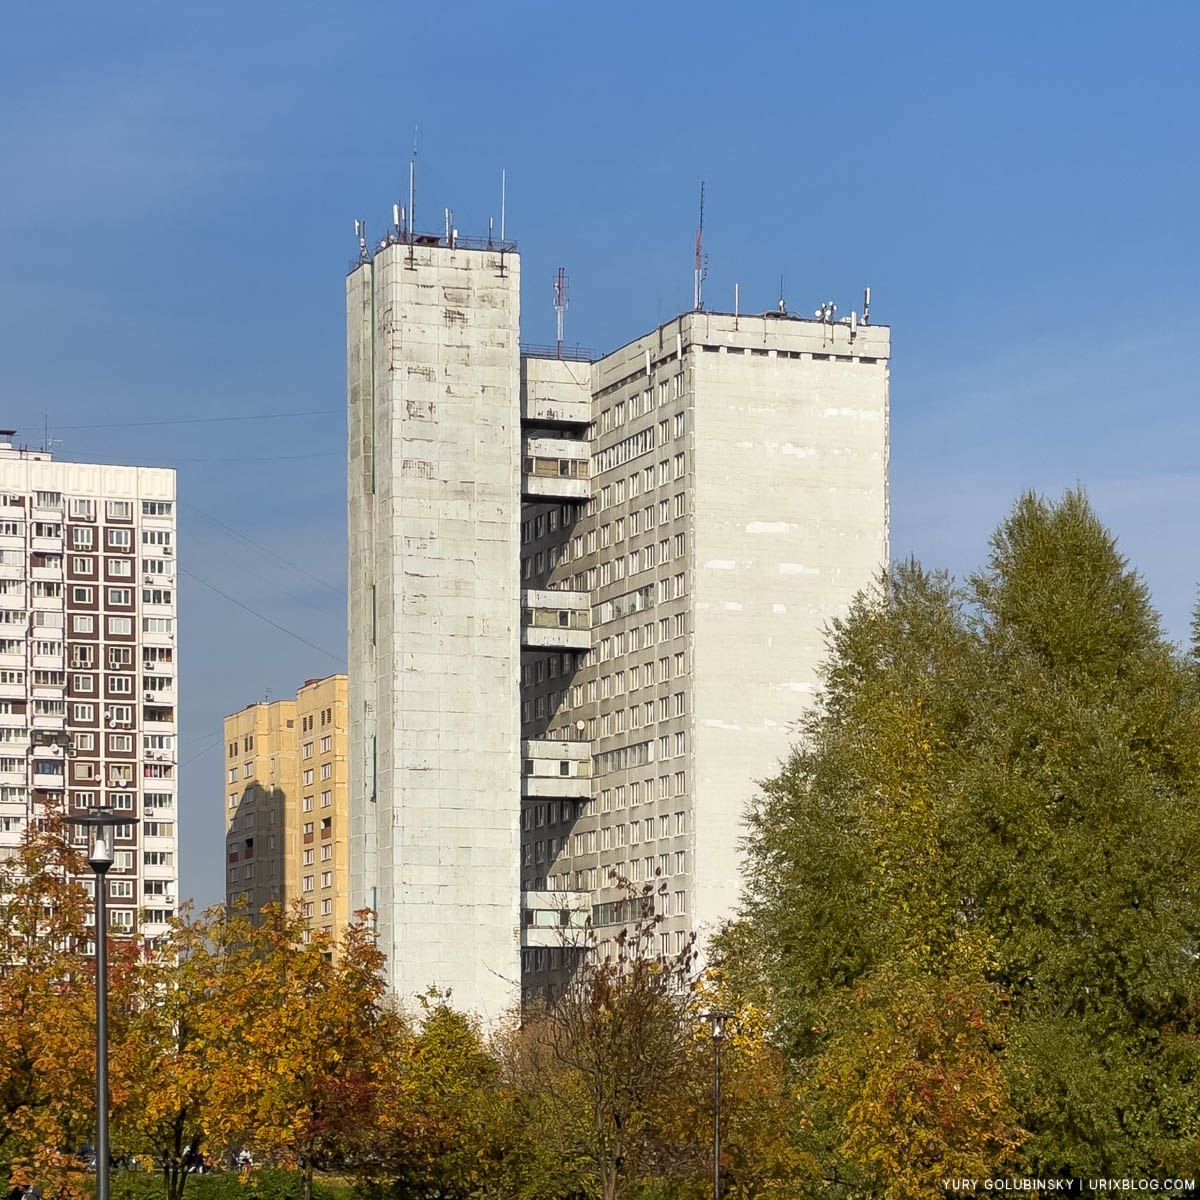 Druzhba MAI hostel, Park of Friendship, Northern River Station, Display P3, Moscow, Russia